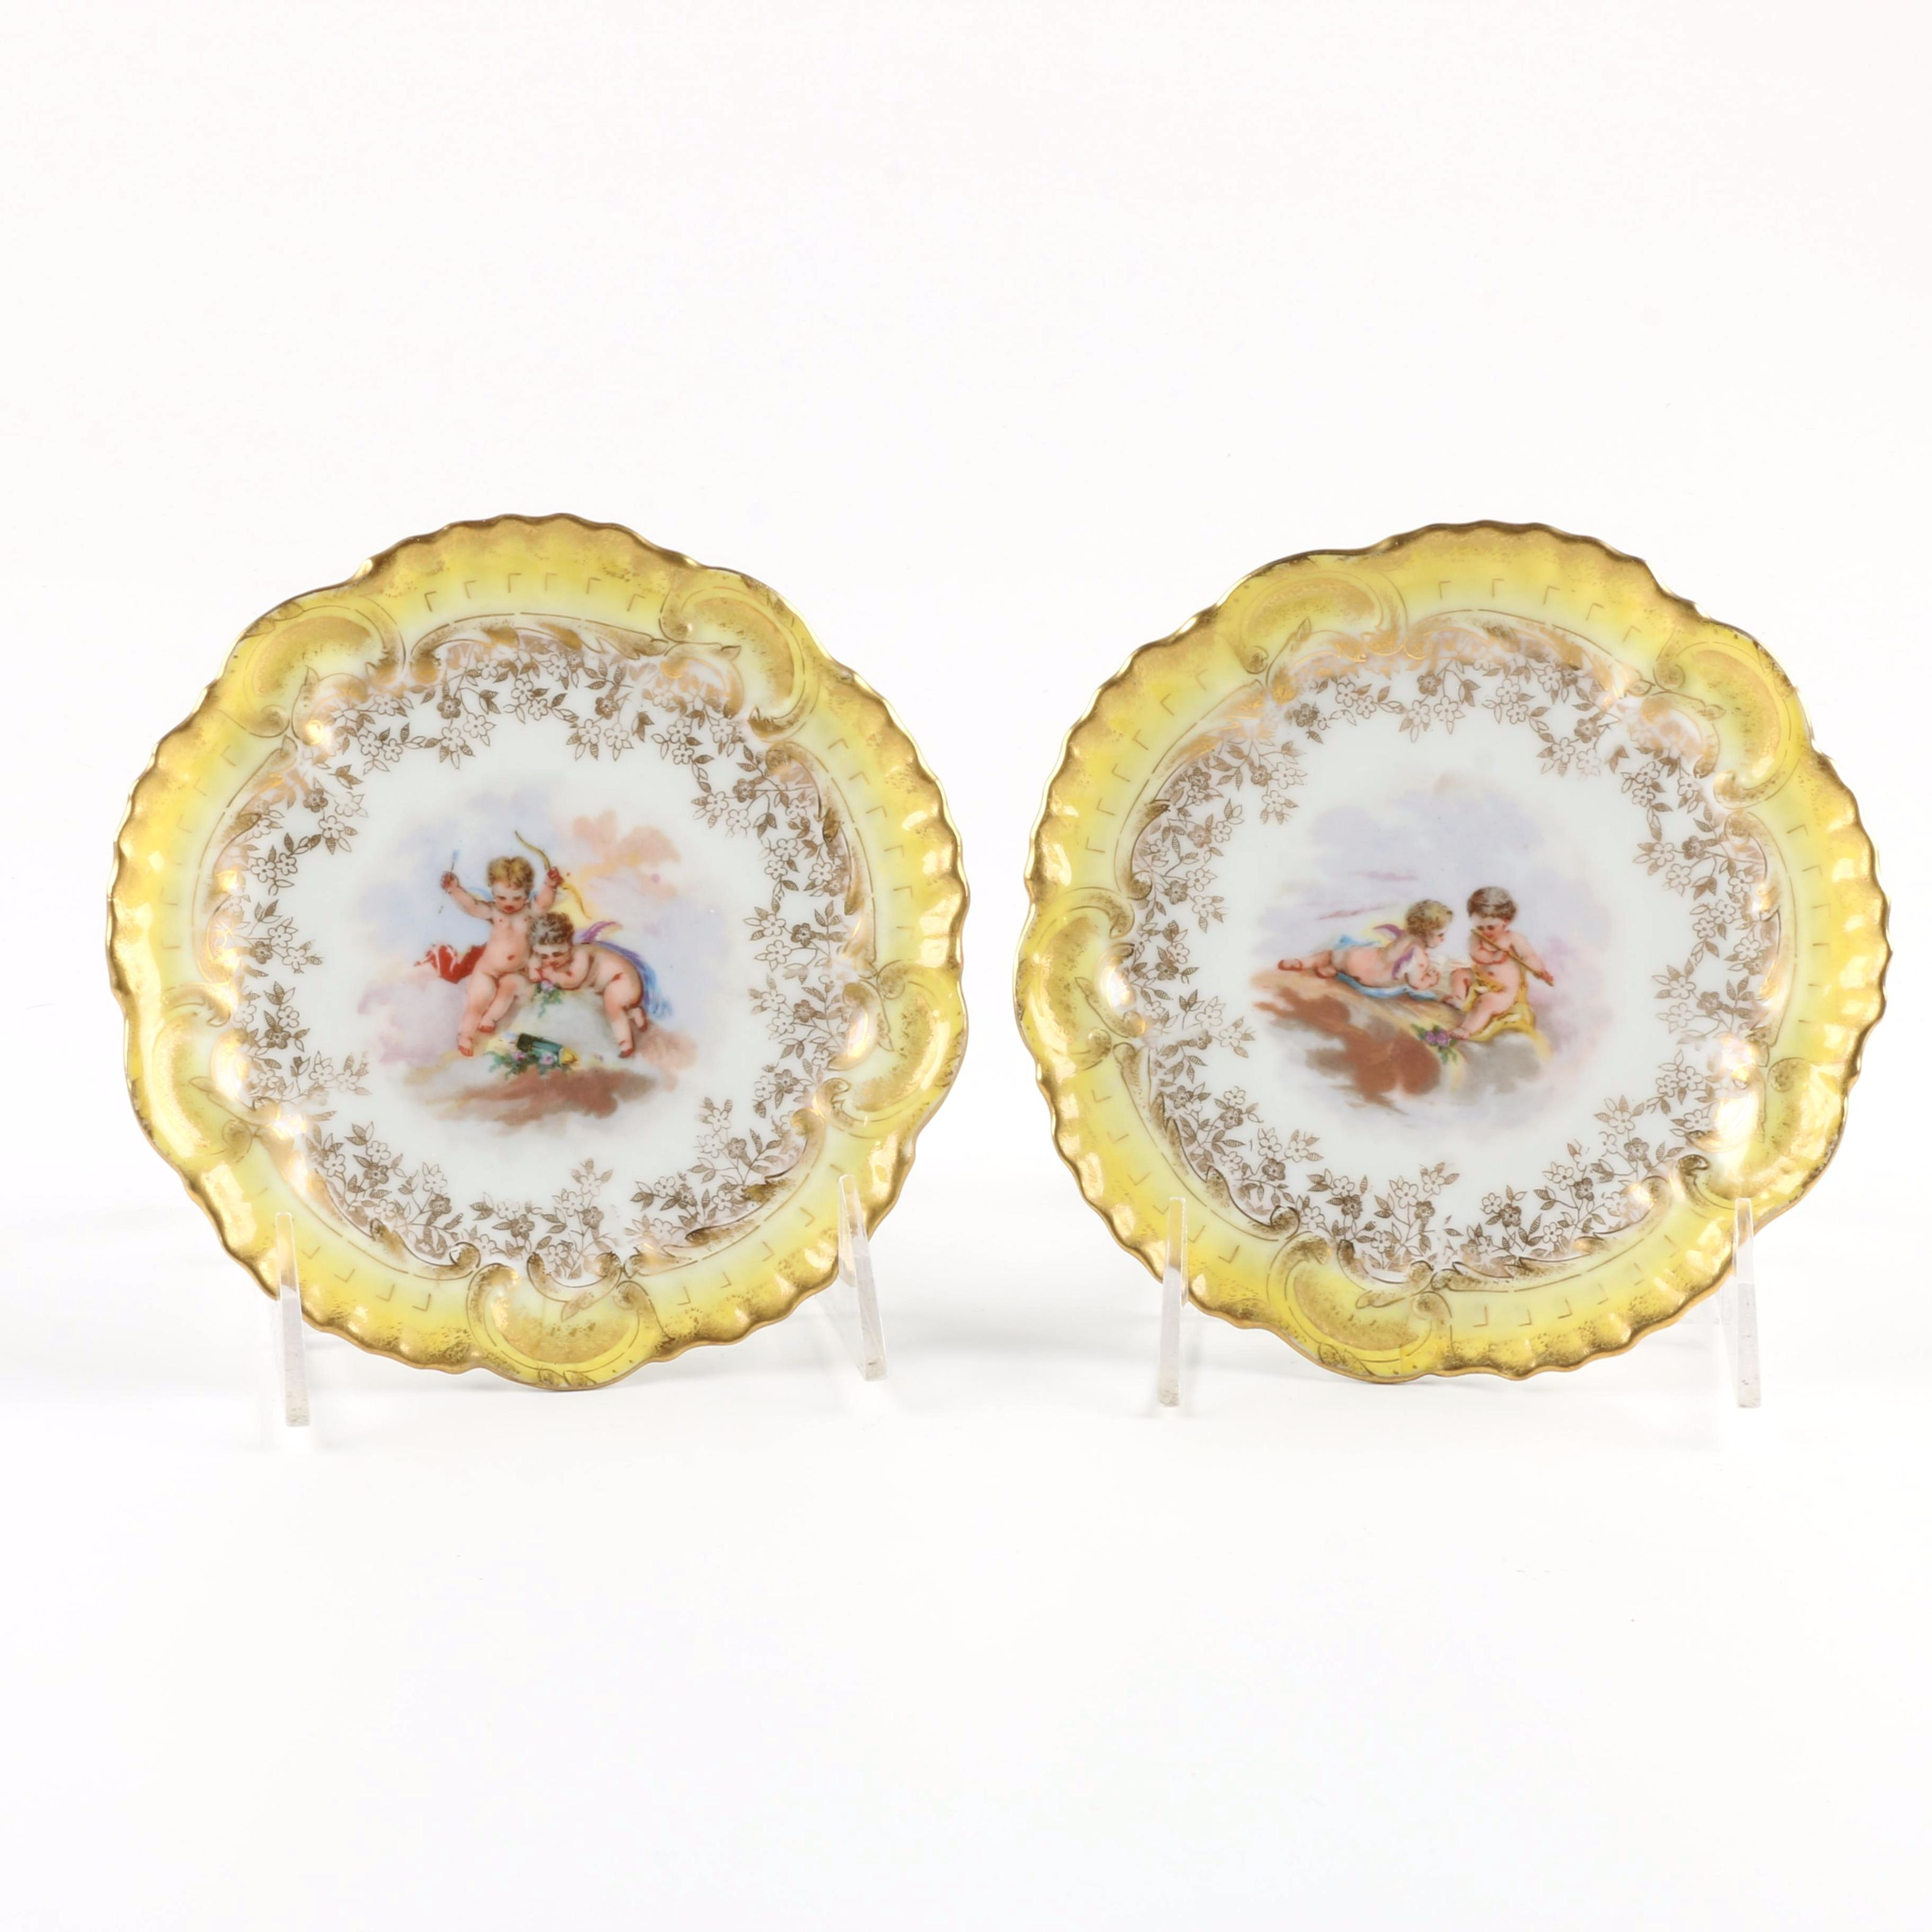 Two A. Laternier Limoges Plates with Hand Painted Cherub Scenes